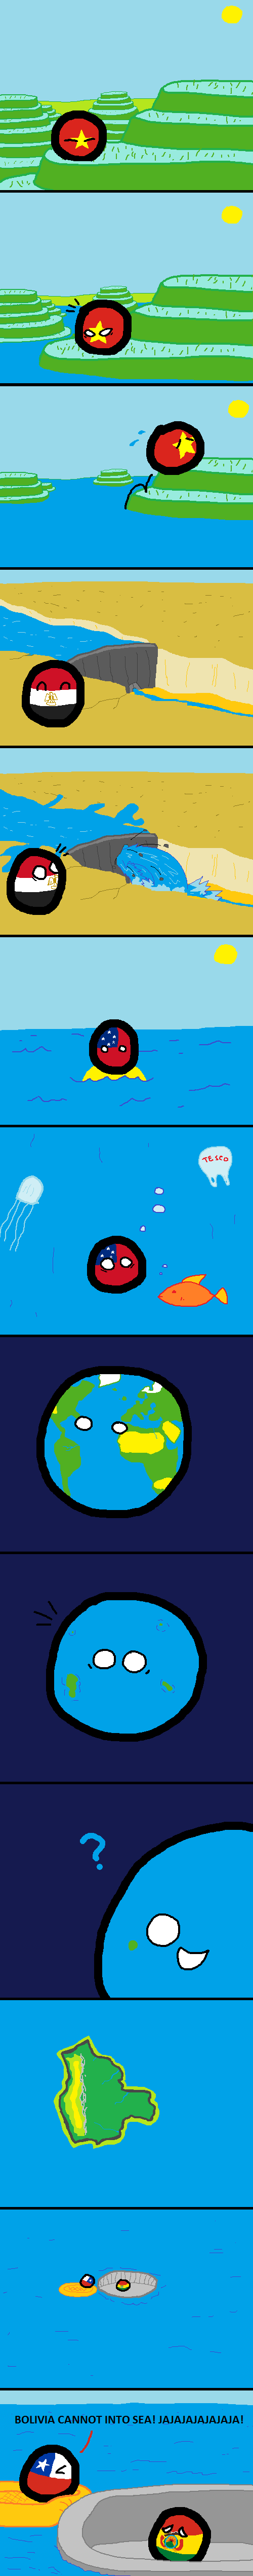 http://img4.wikia.nocookie.net/__cb20141021113540/polandball/es/images/1/1f/Bolivia_sin_mar.png